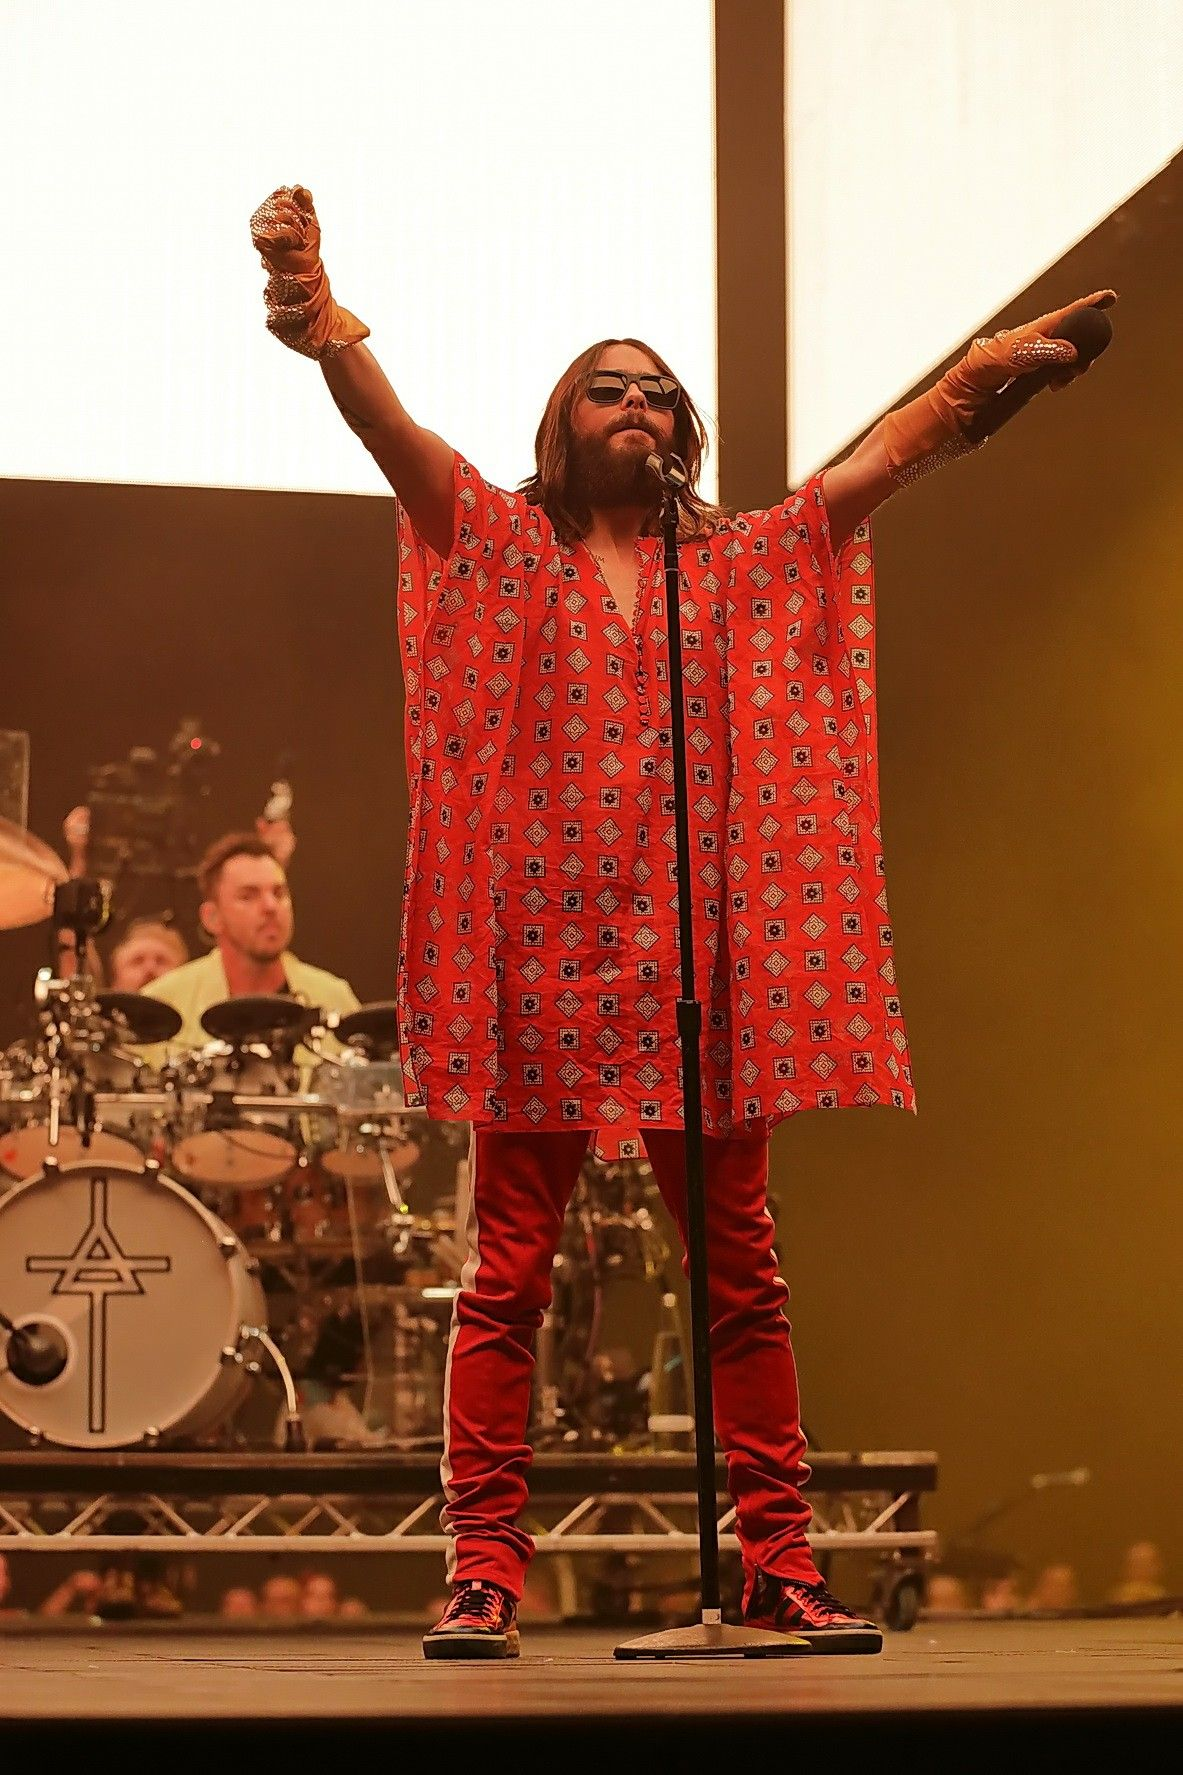 Berlin The Monolith Tour 03 May 2018 Thirty Seconds To Mars Flapper Dress Fashion Flapper